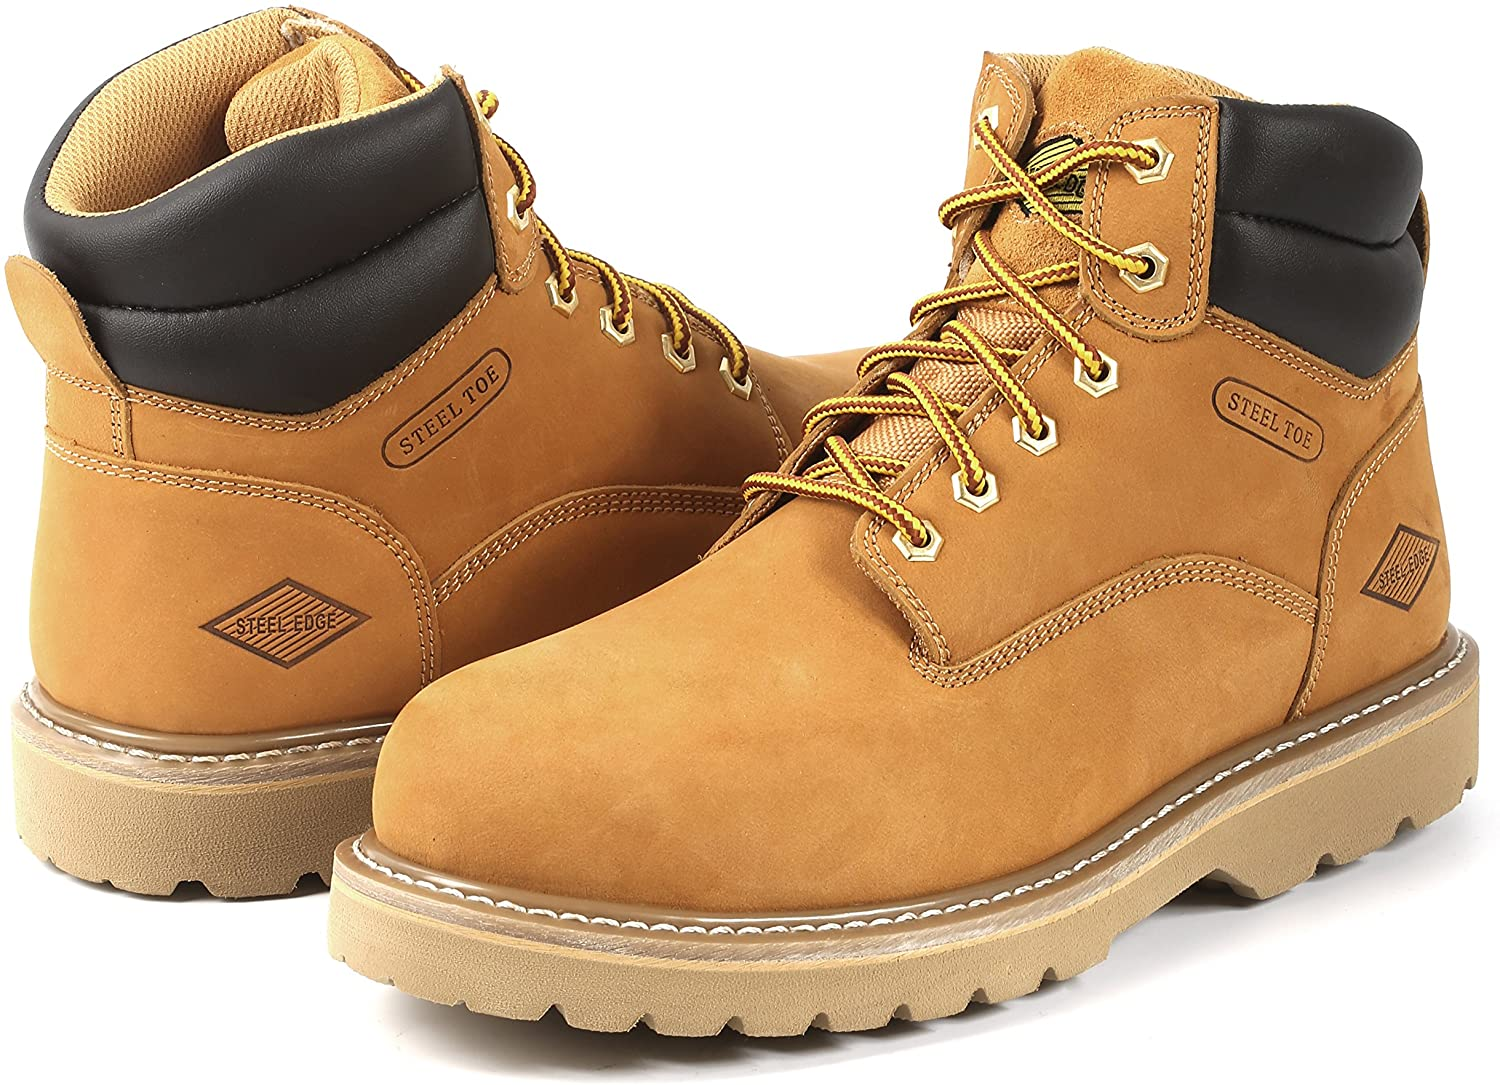 Affordable and safe, Steel Toe, Lightweight and Waterproof Electrician Workboots for Men will be a good choice.